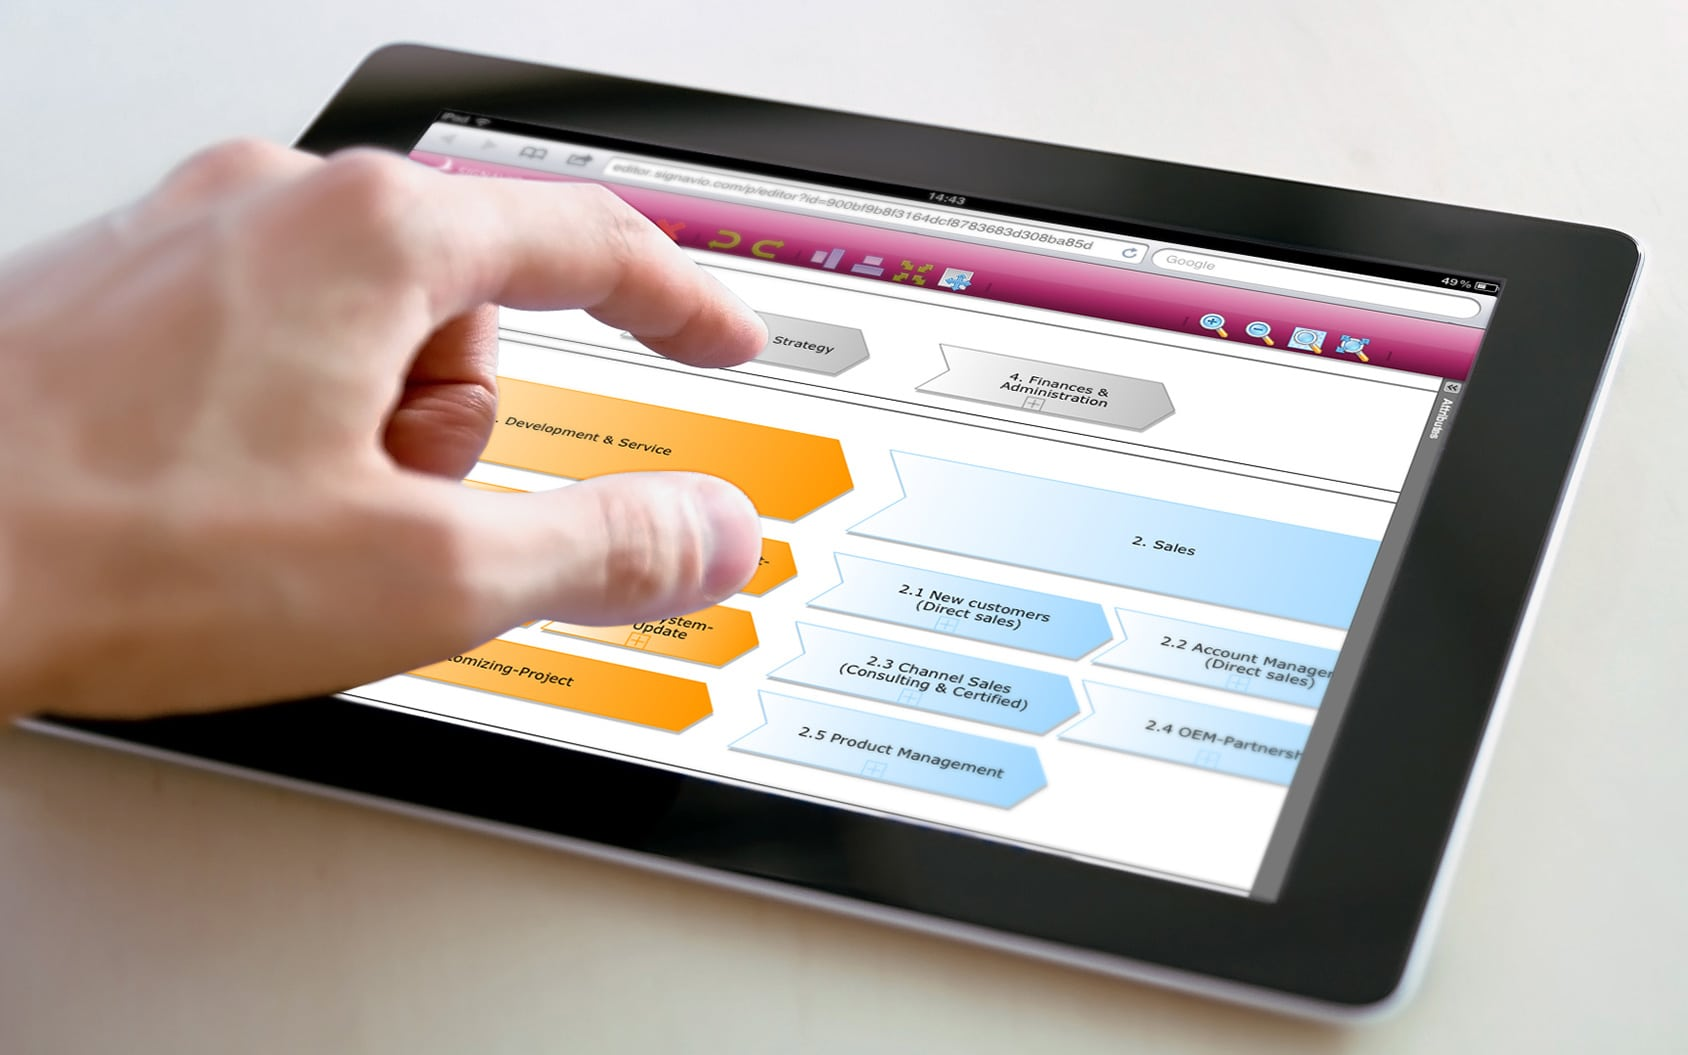 Process Analysis made easy at the tablet